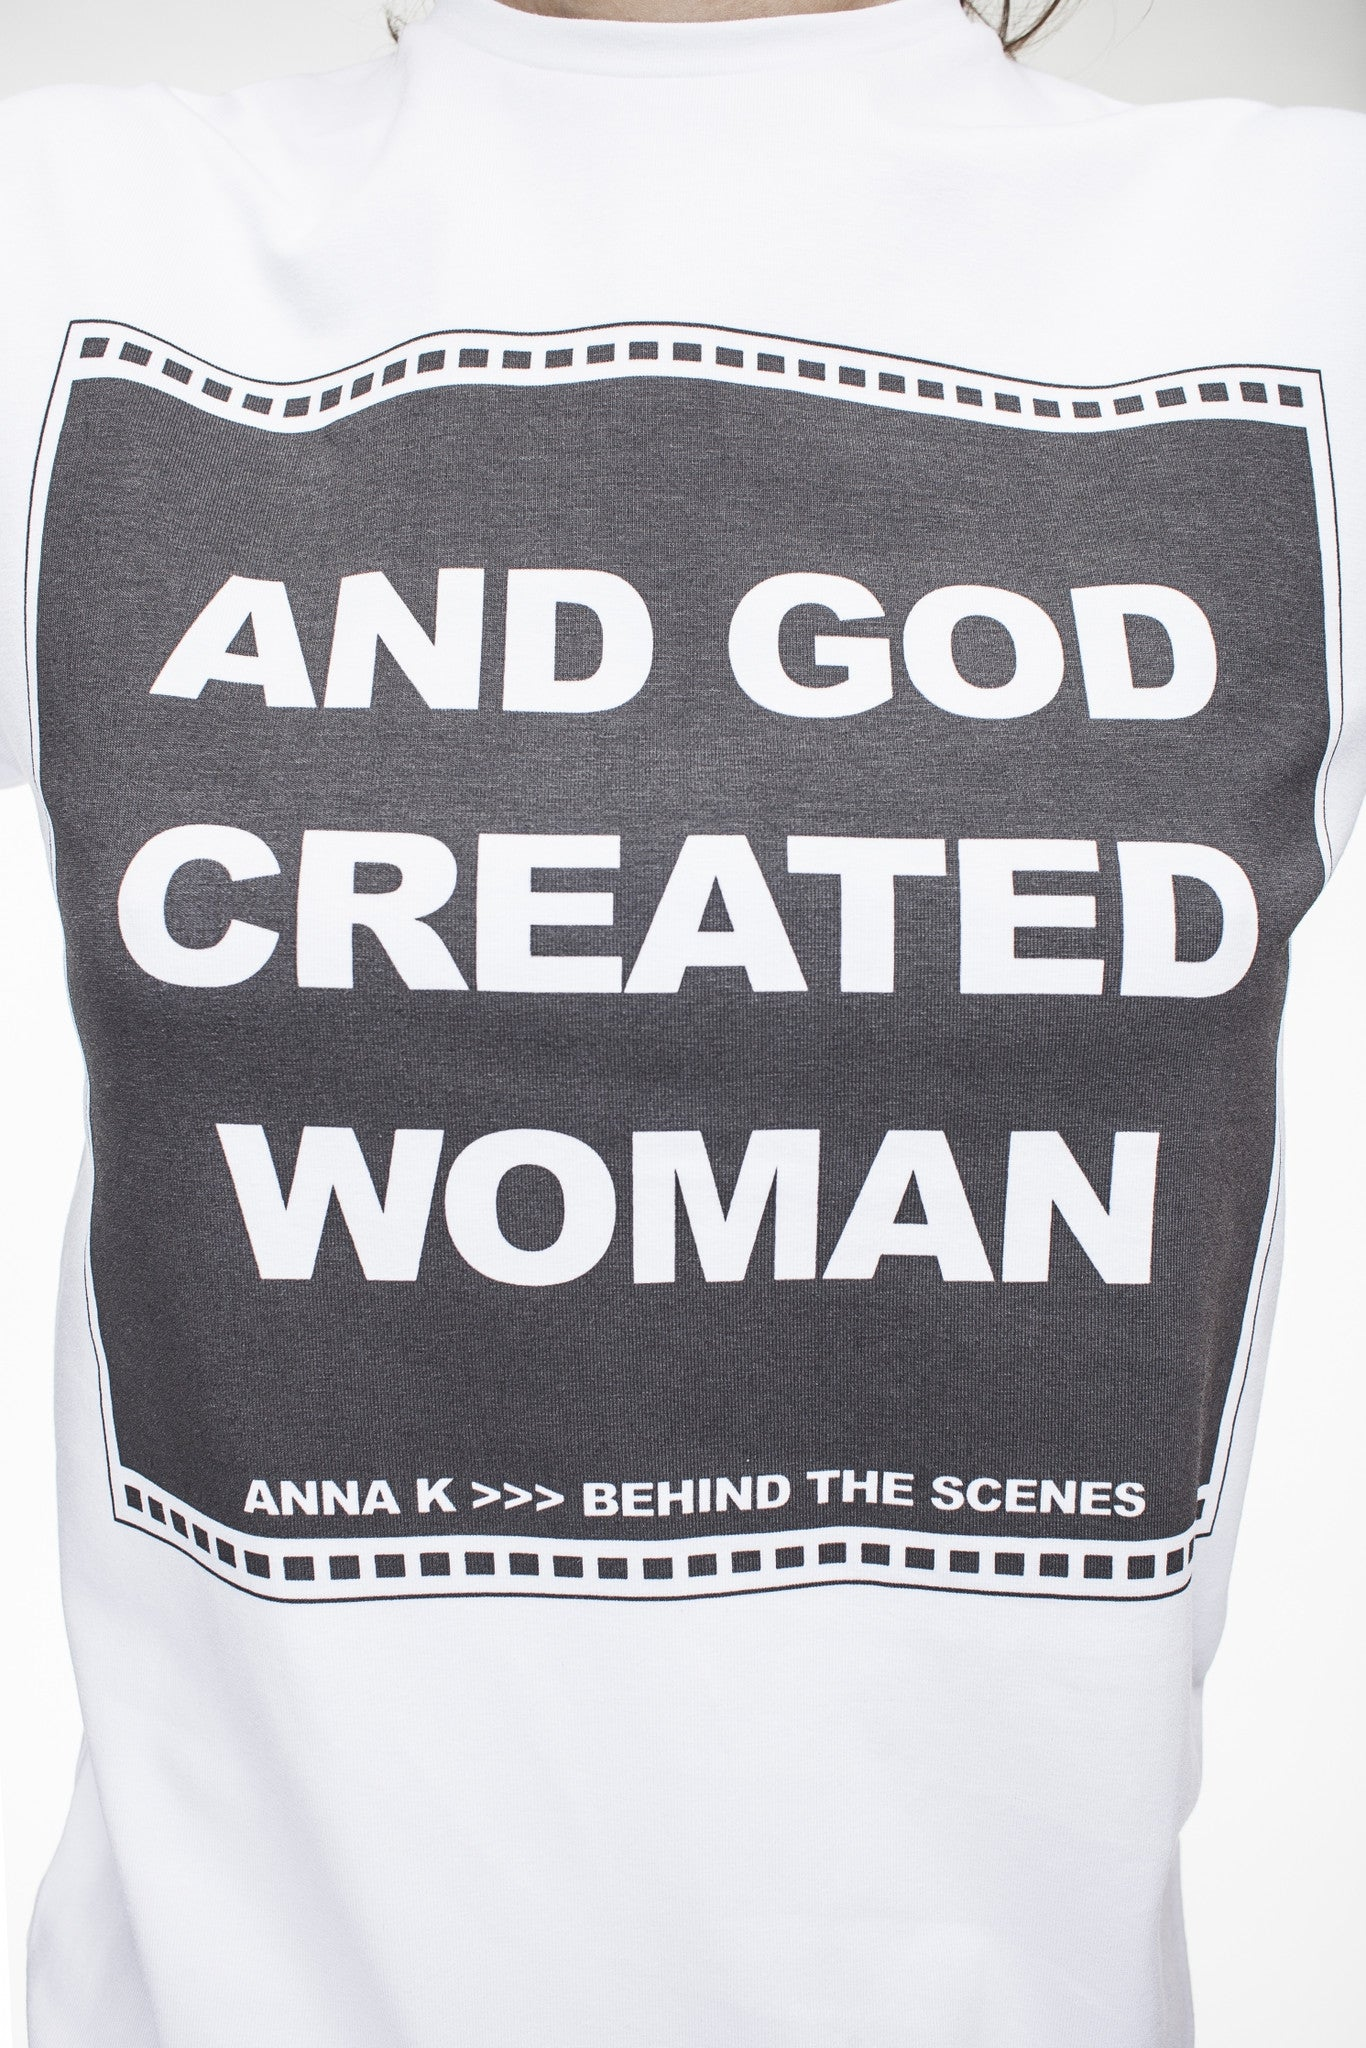 And God created woman - Anna K  - 3